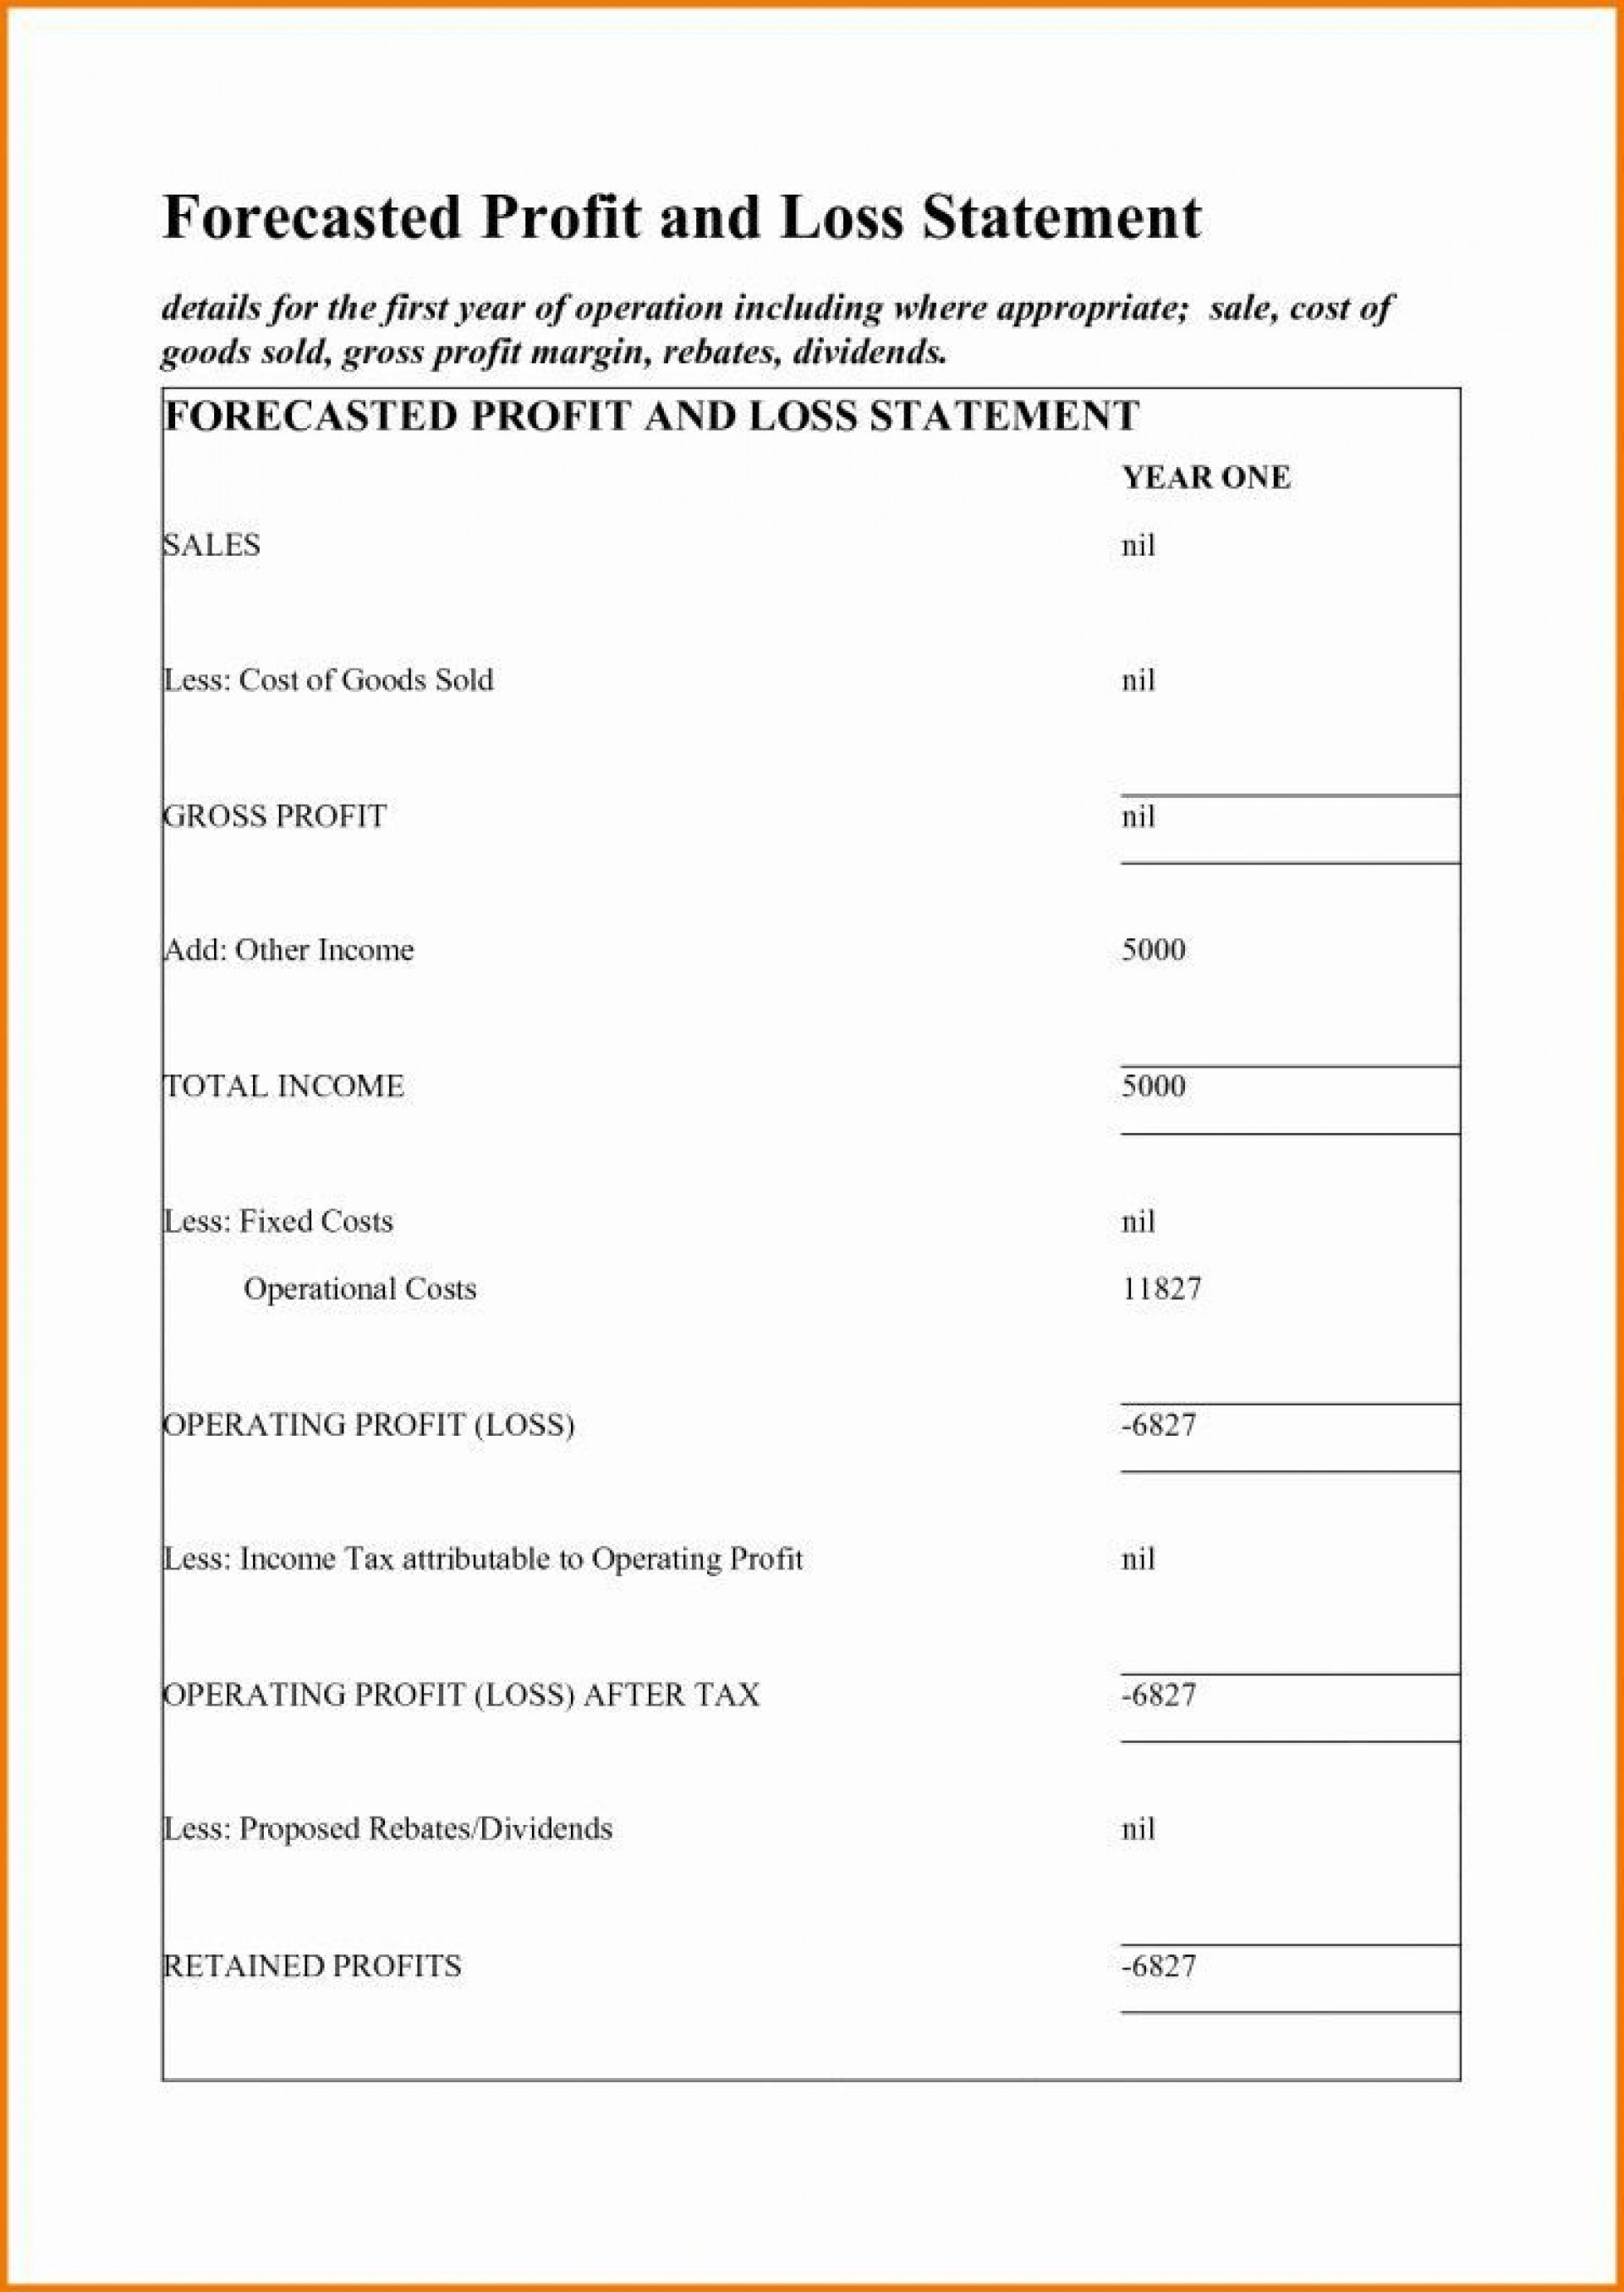 001 Phenomenal Simple Profit And Los Statement Template For Self Employed Photo  Free1920